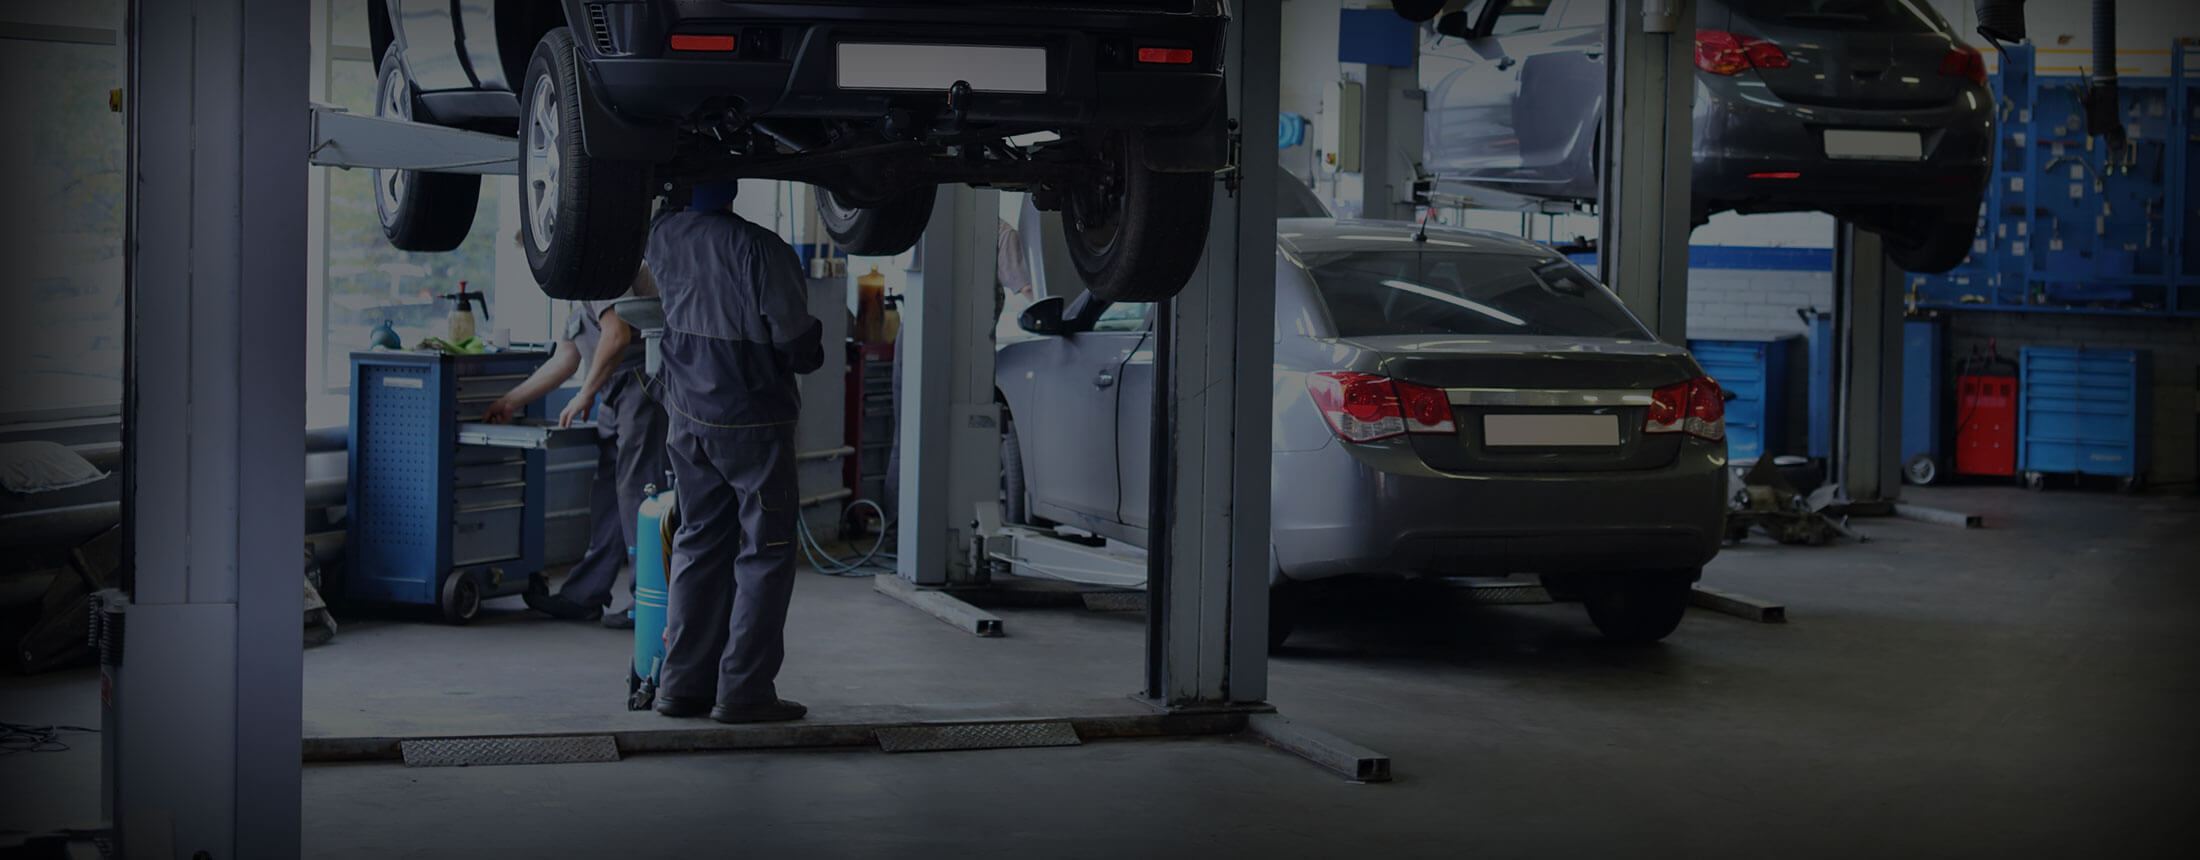 Auto Technicians working on a vehicle raised on an auto lift